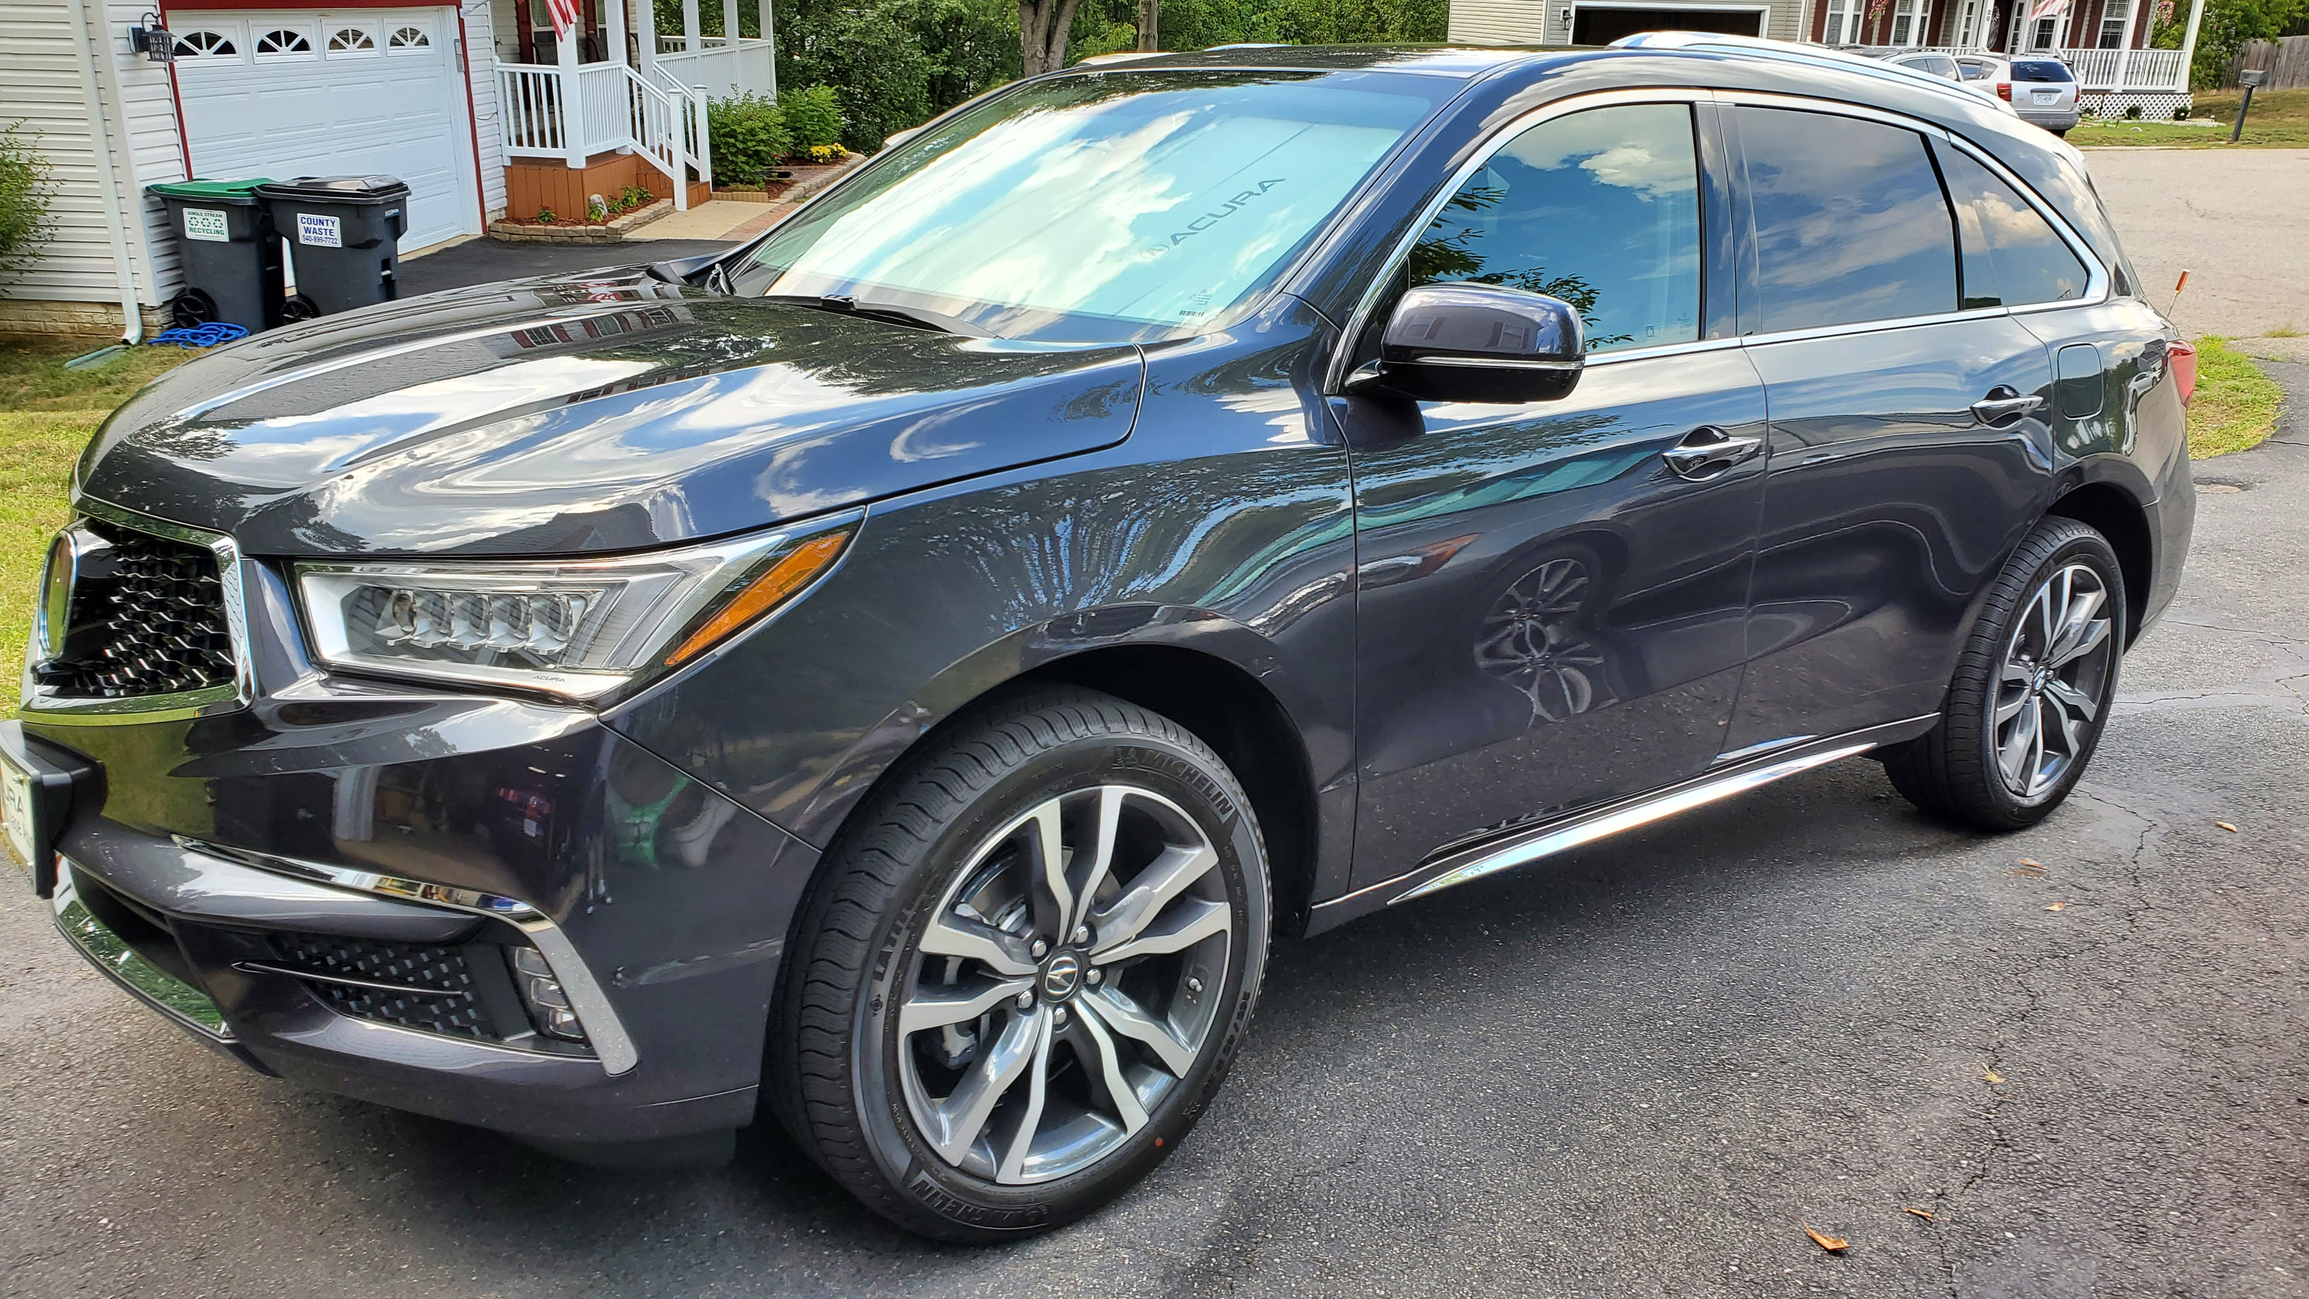 2020 Acura Mdx Lease Deals And Prices Page 31 Car Forums At Edmunds Com